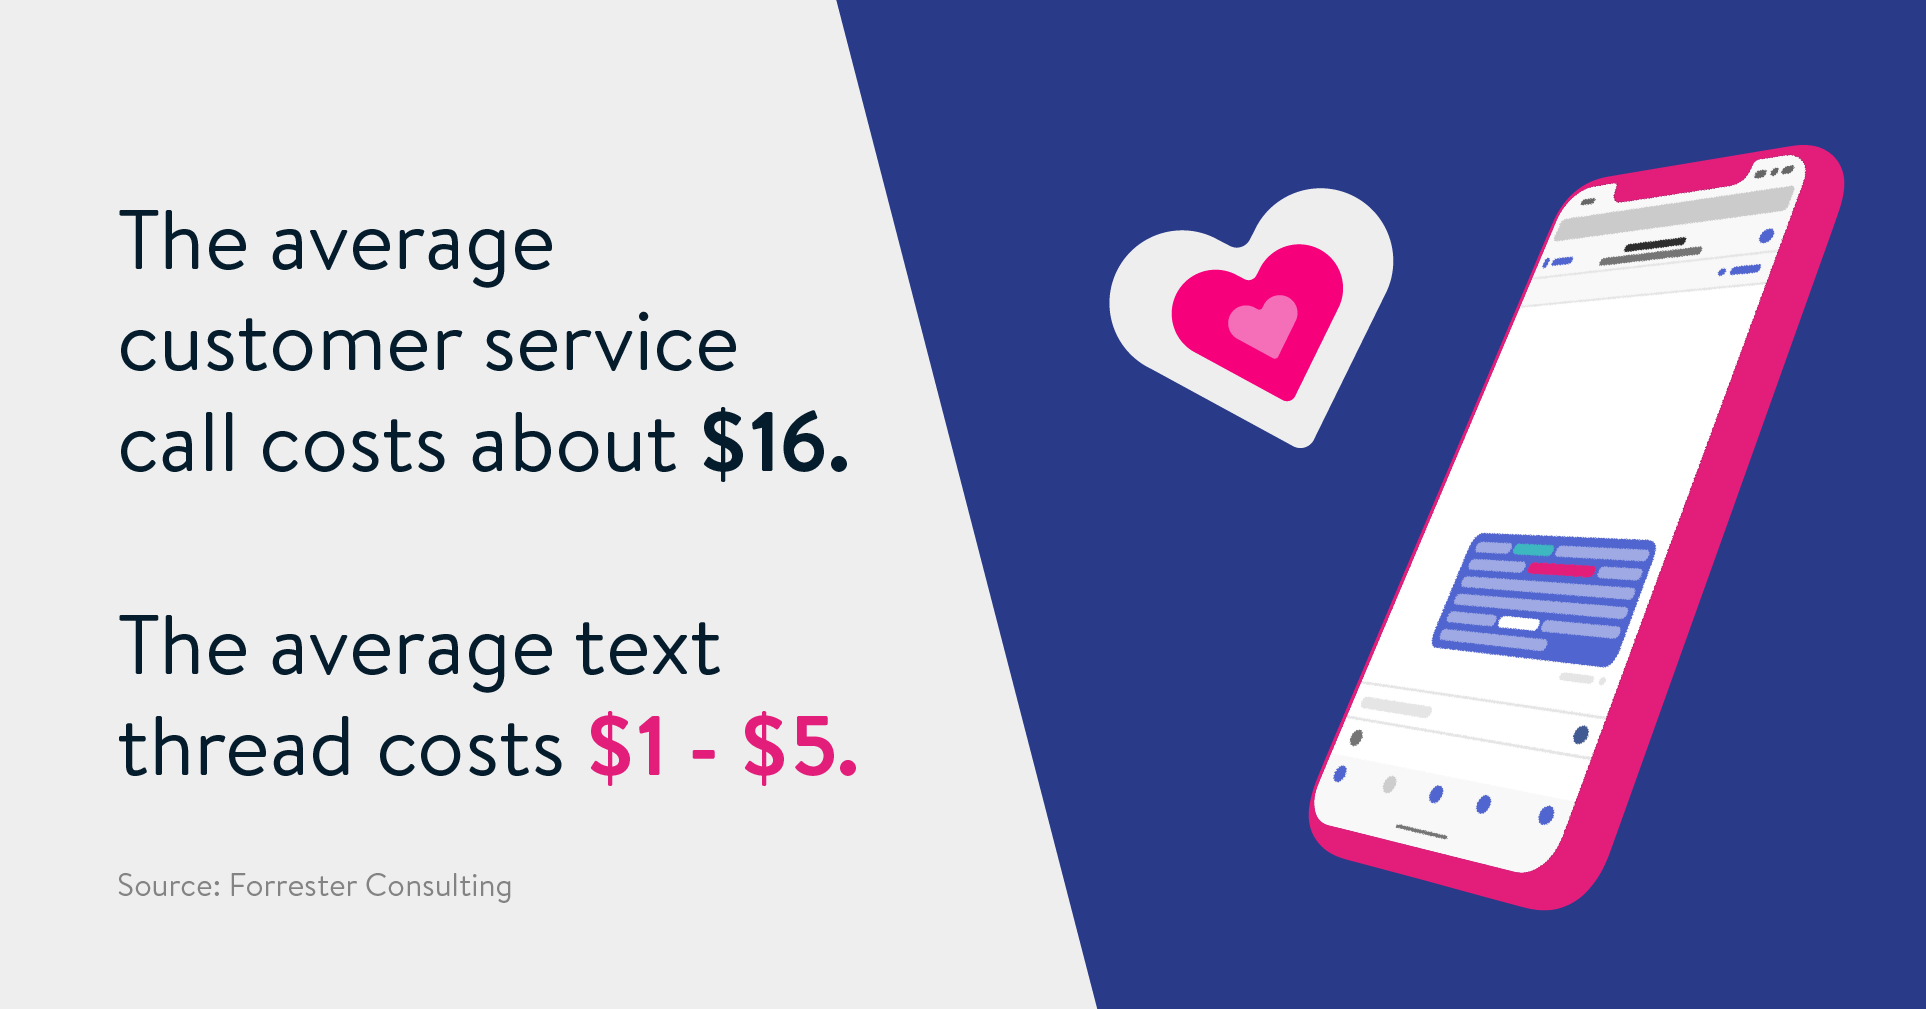 the average customer service phone call costs about $16. Compared to that, the average text thread costs between $1 to $5 per interaction